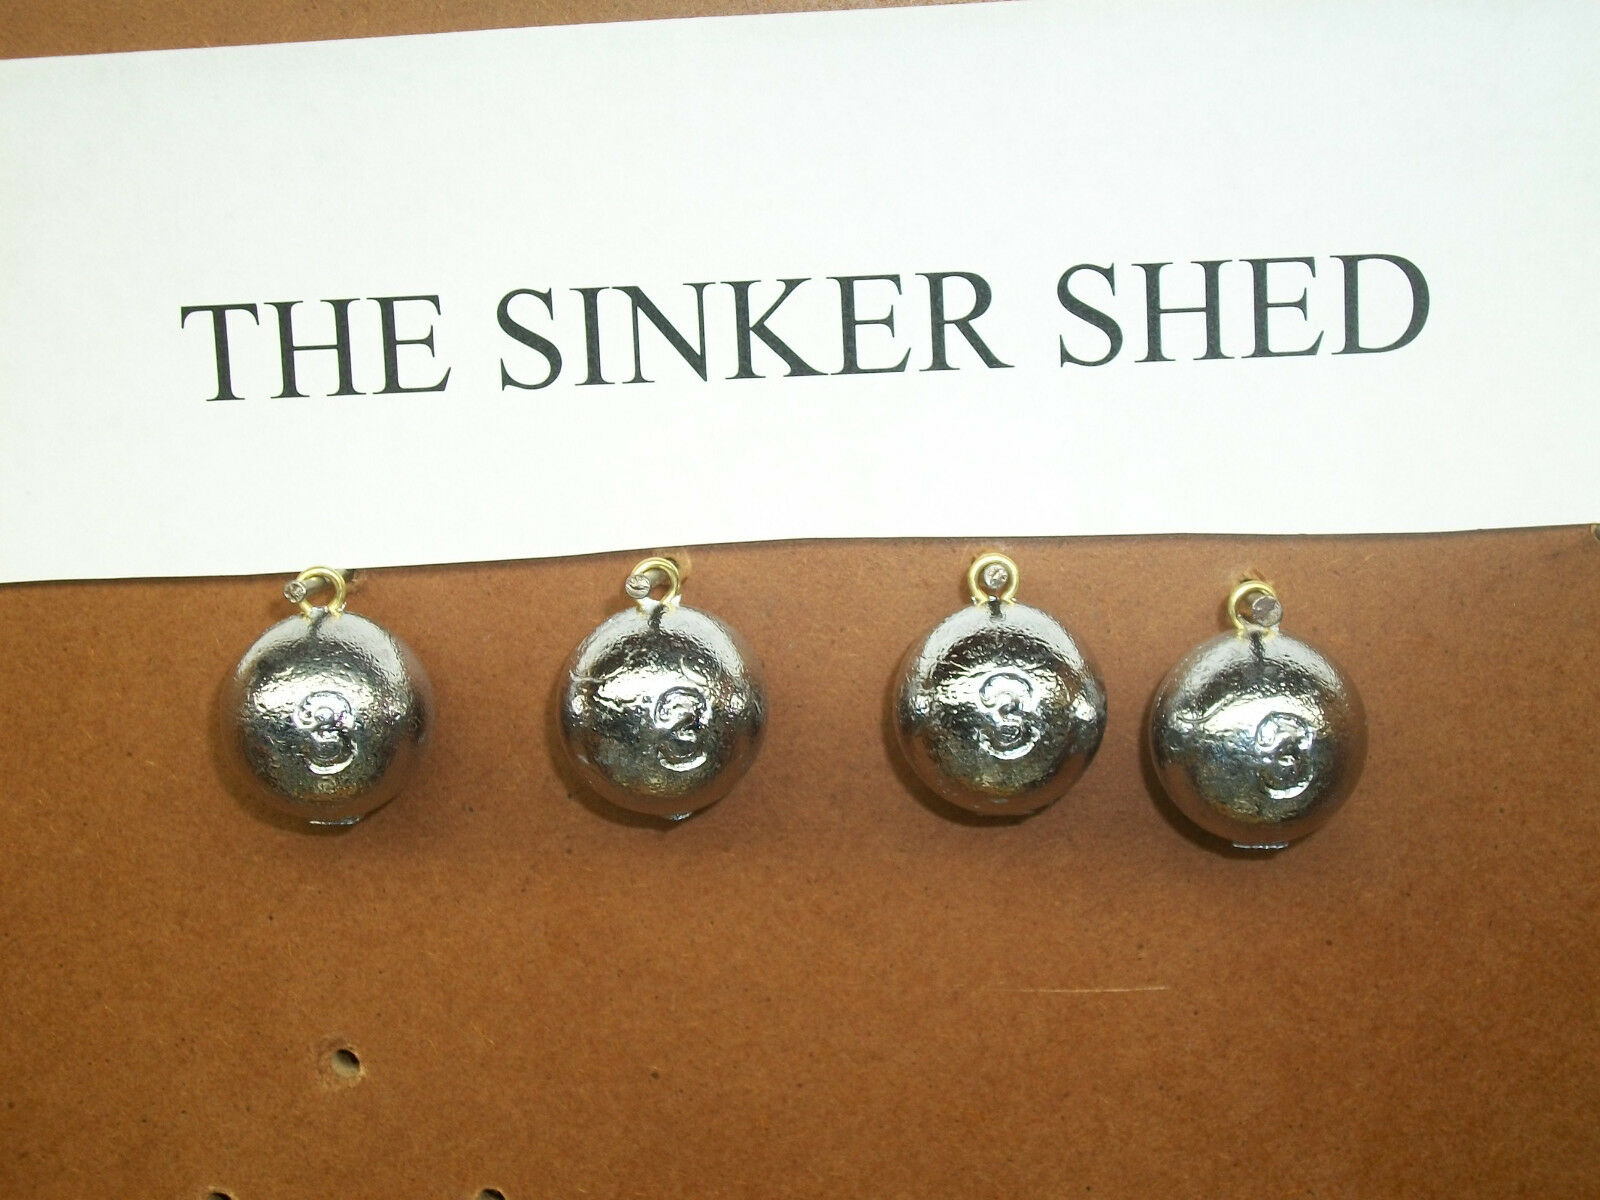 3 oz cannon ball sinkers - choose quantity 12 25 50 100 200 - FREE SHIPPING